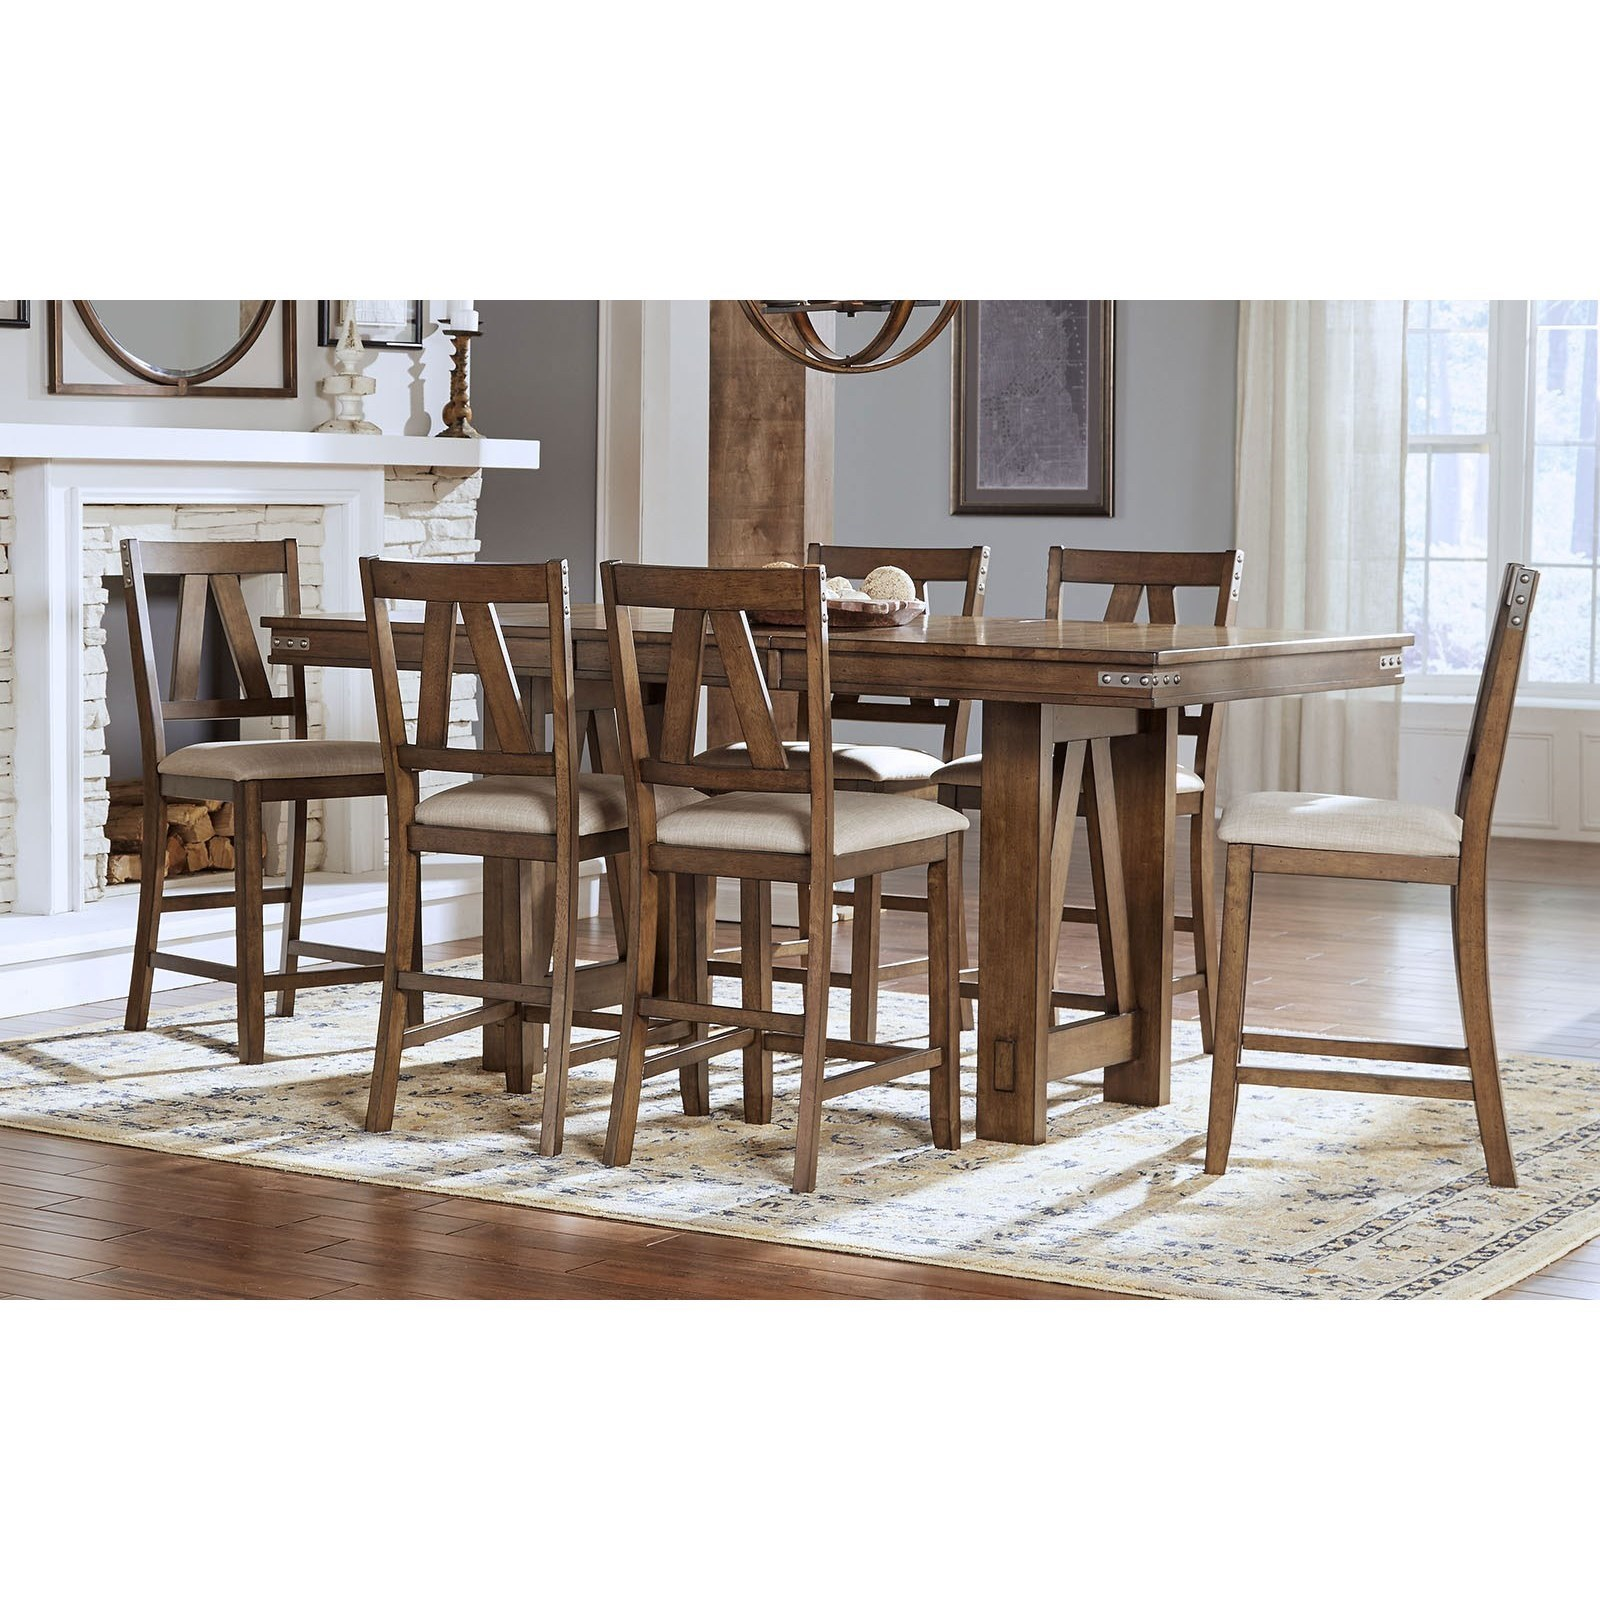 Incroyable AAmerica Eastwood DiningCounter Height Table And 6 Side Chairs ...